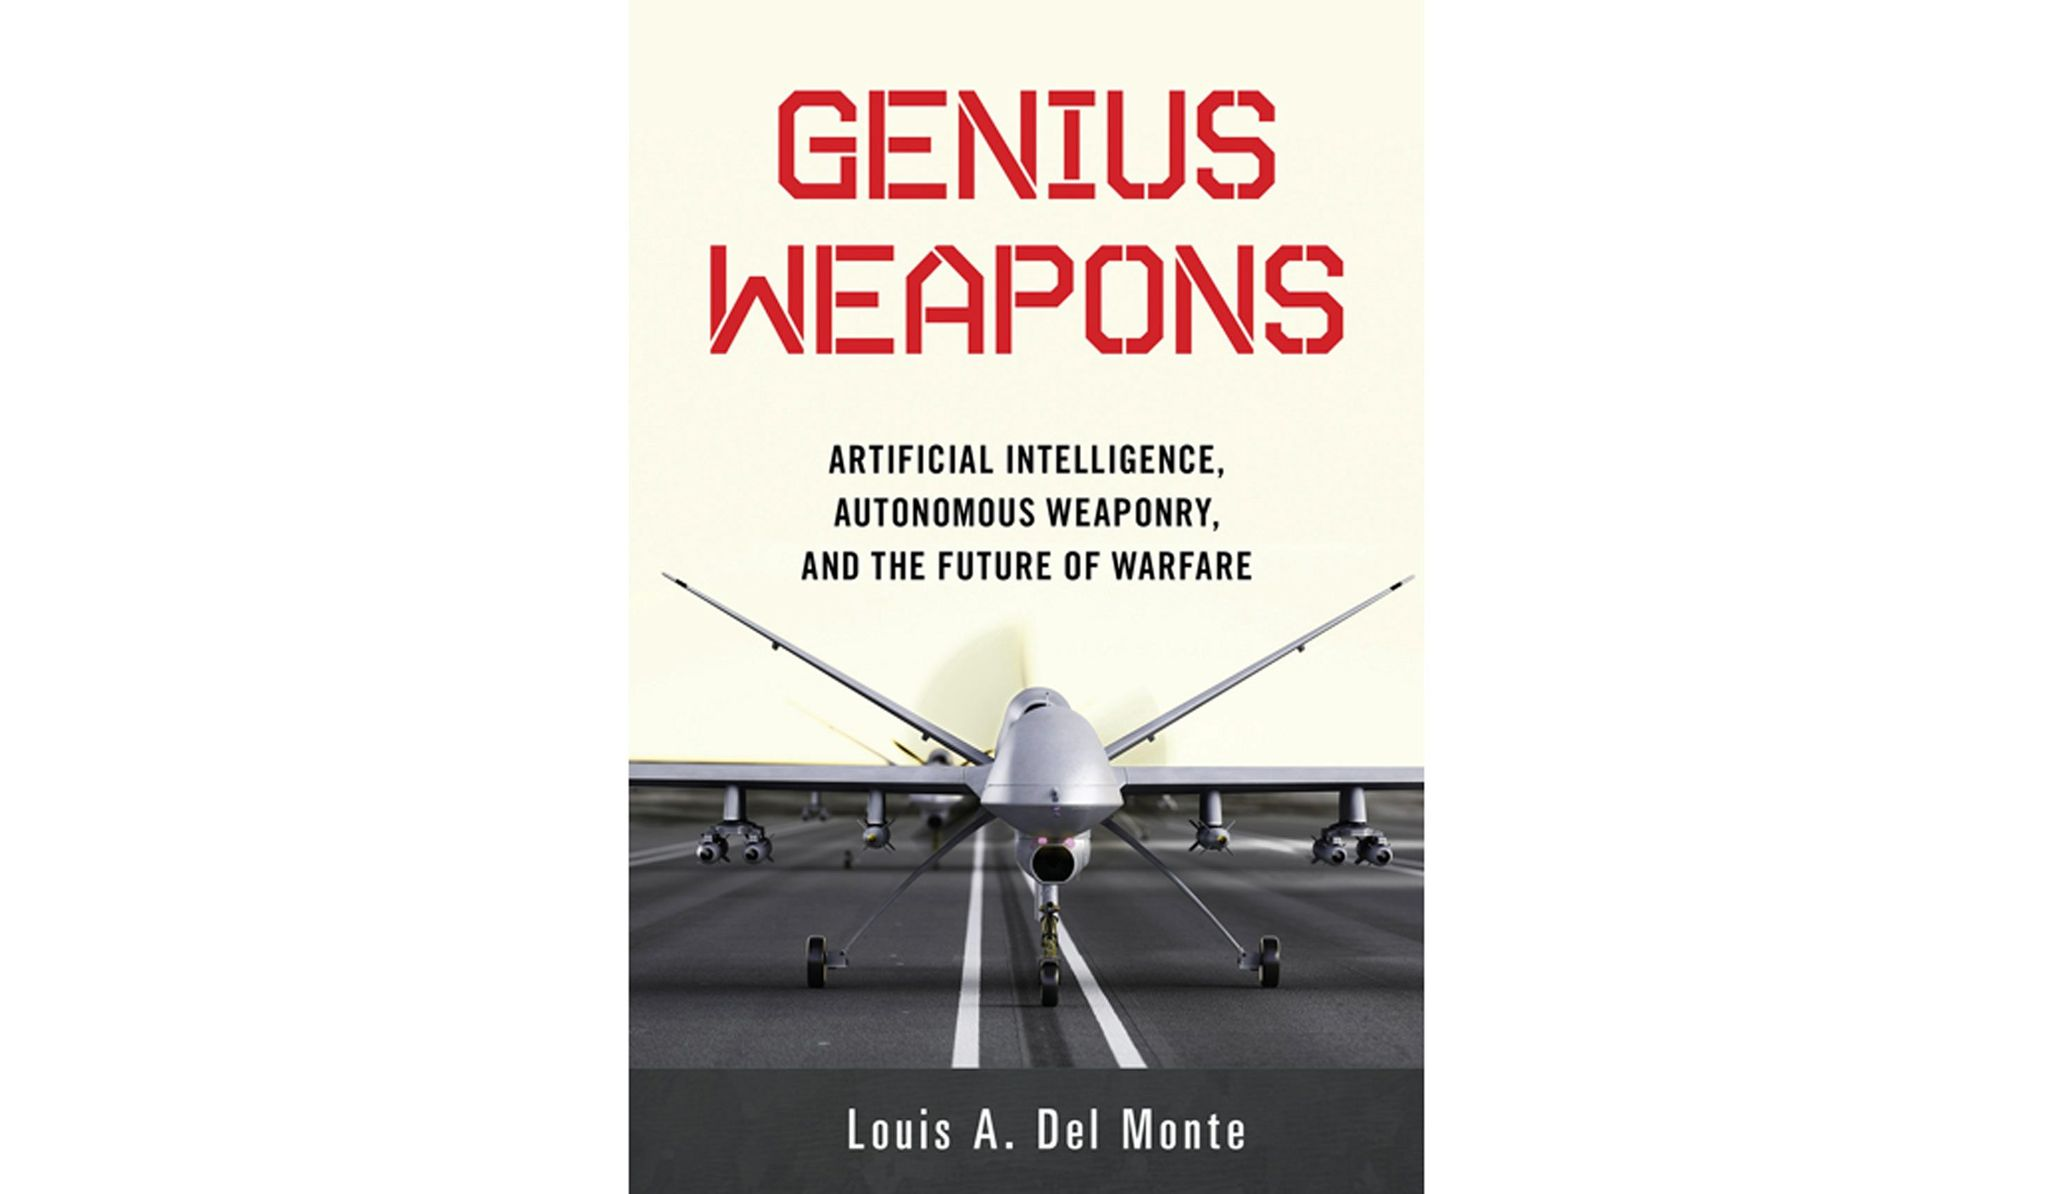 BOOK REVIEW: 'Genius Weapons' by Louis A. Del Monte